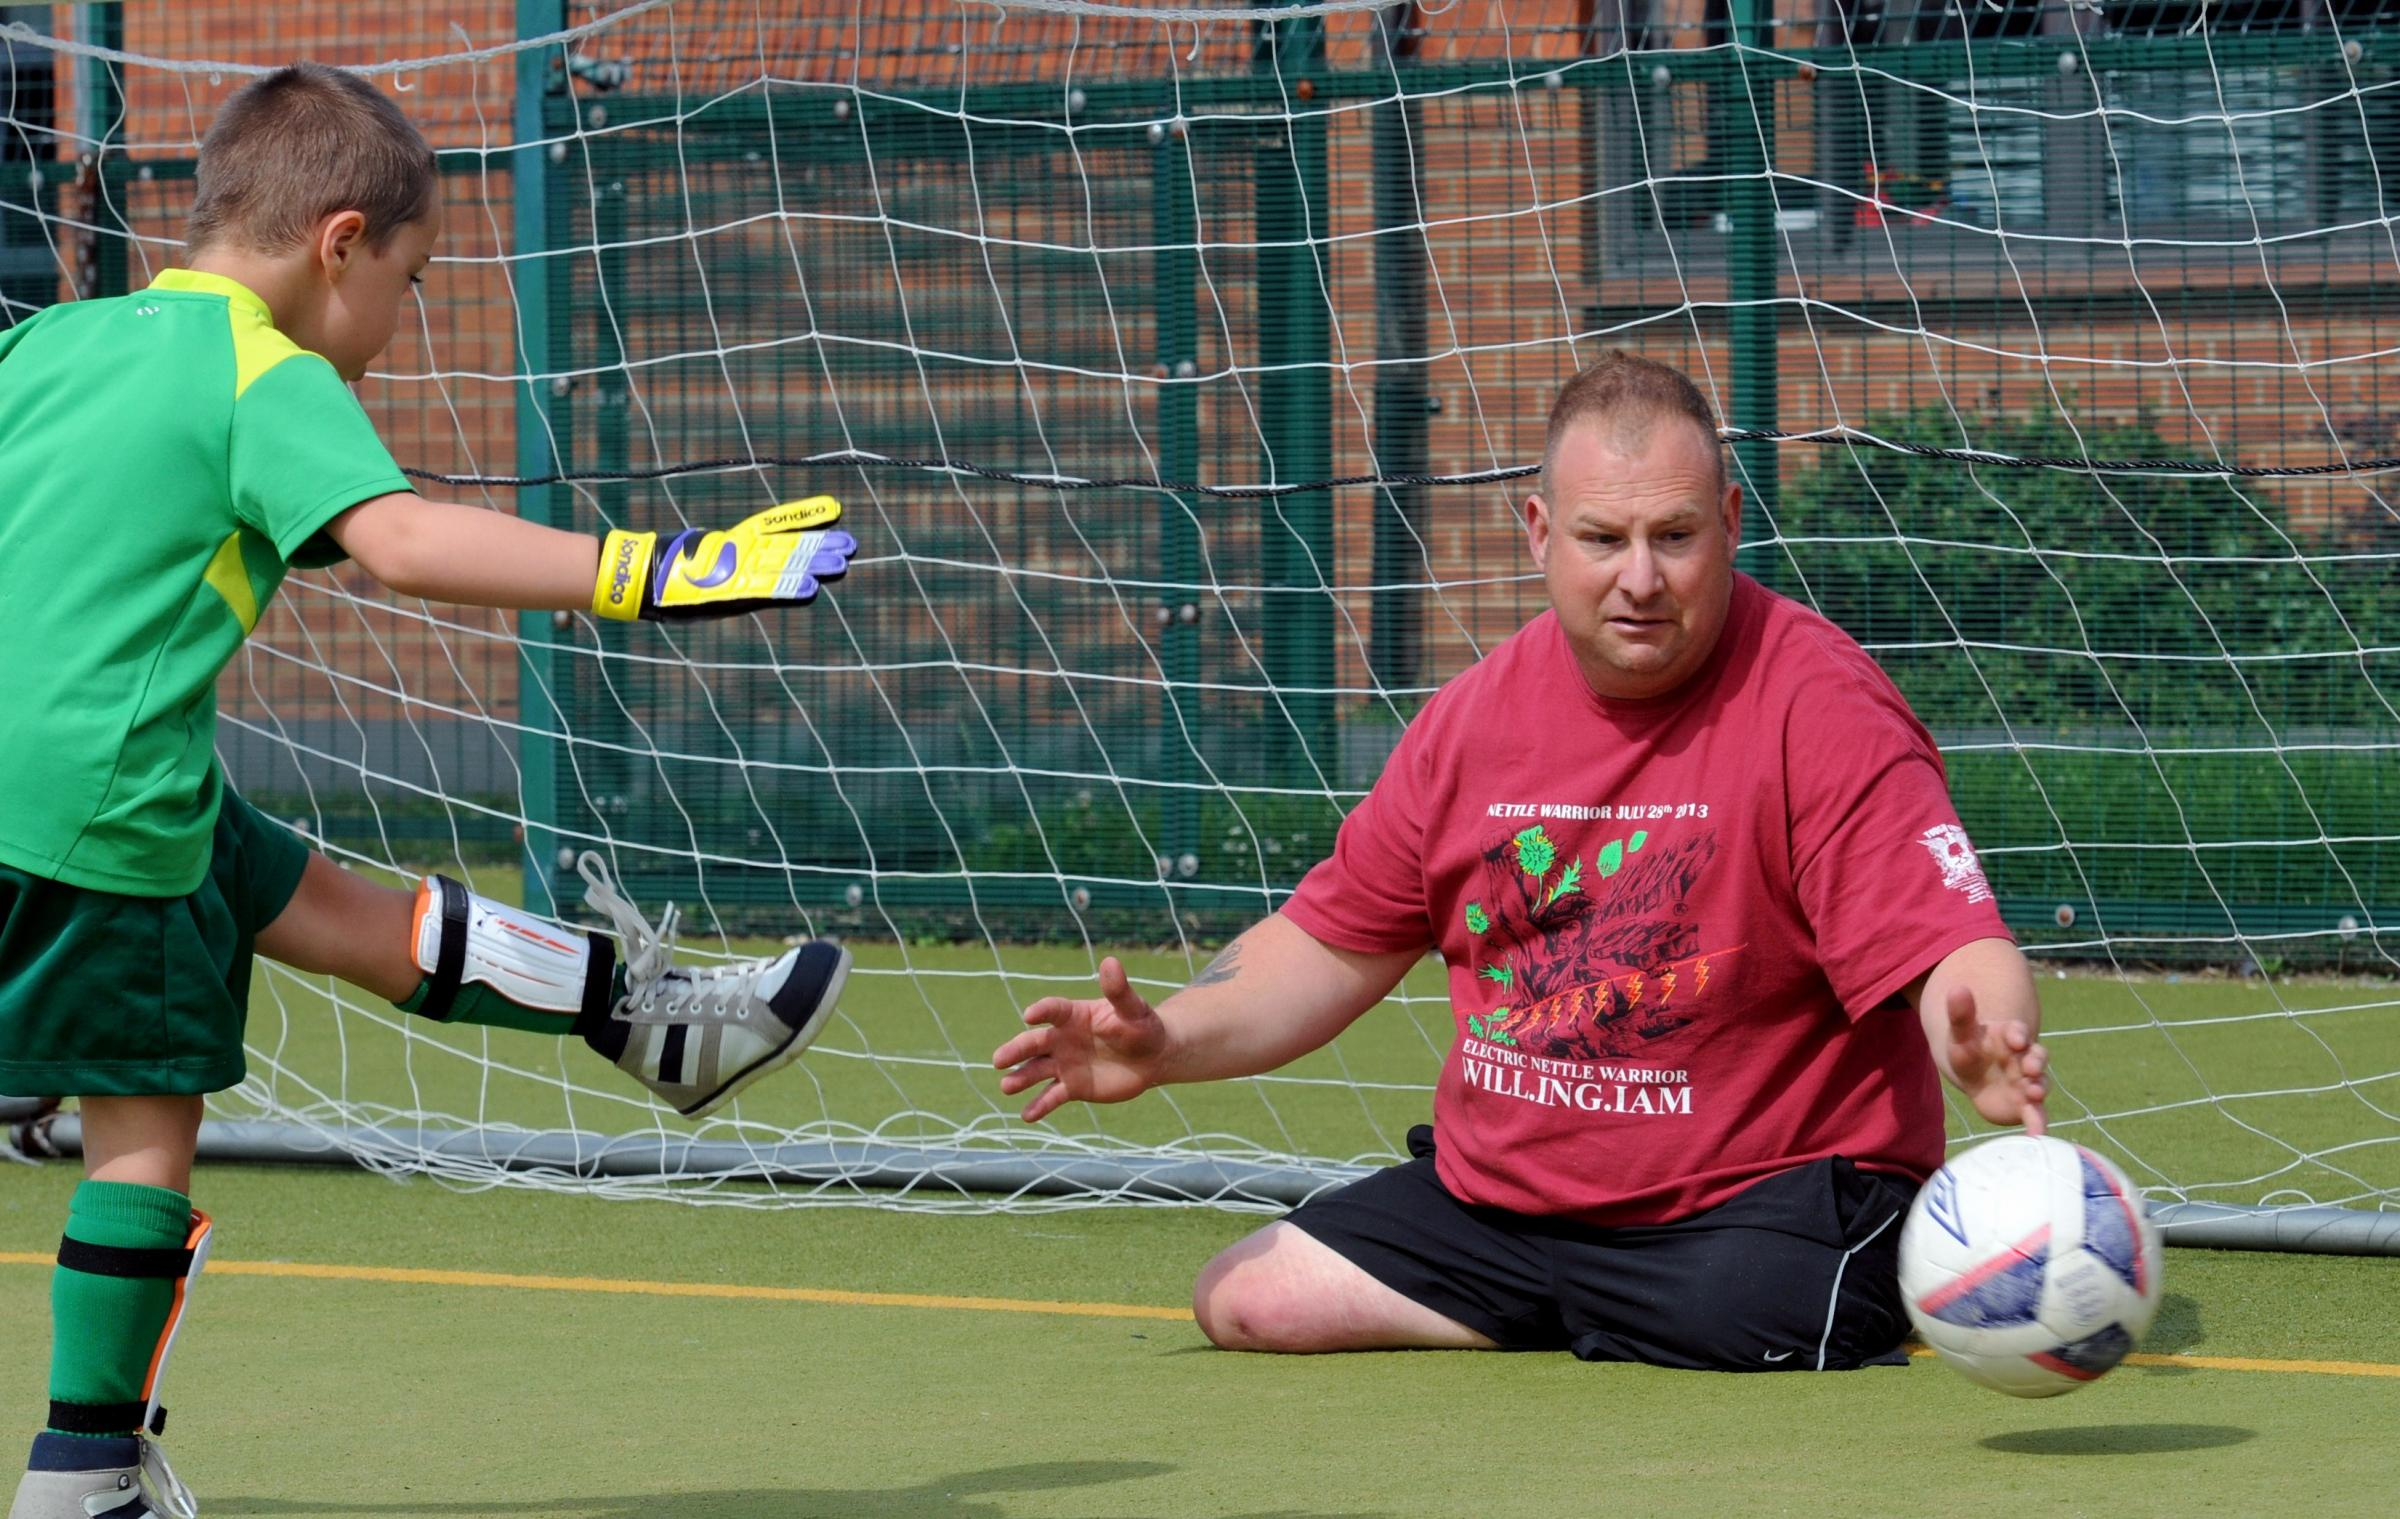 Para triathlete Alan Rayment in goal for a game of football during the disability sports day at Energise